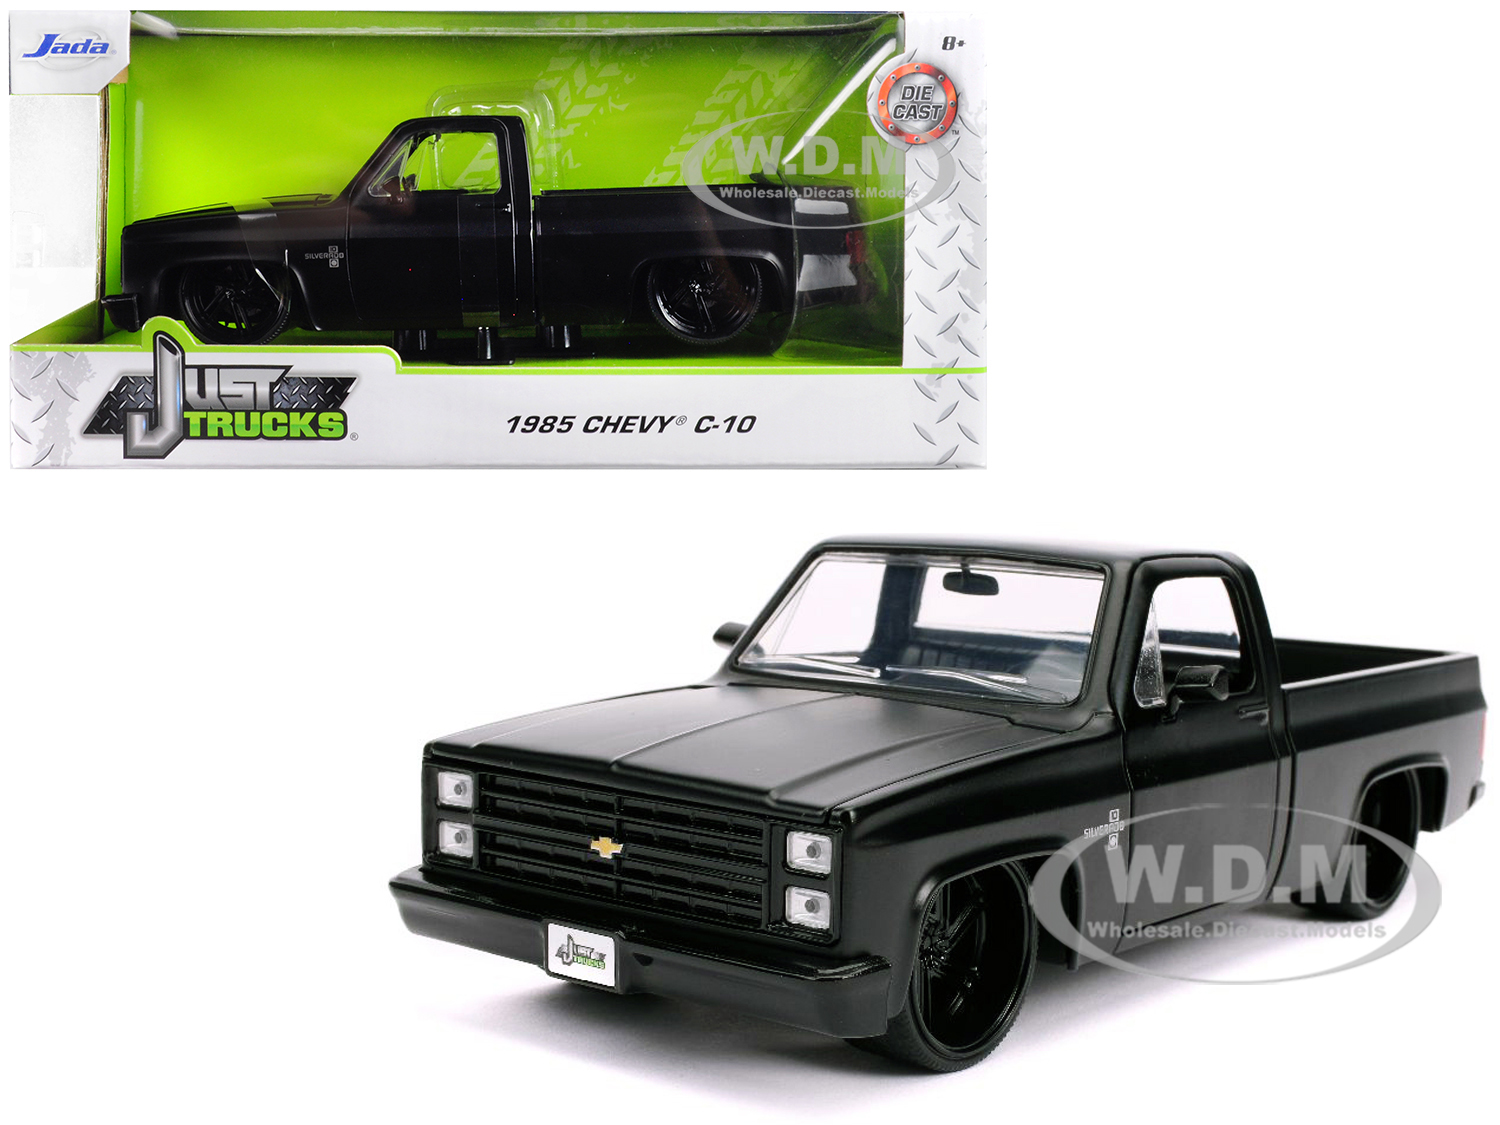 1985 Chevrolet Silverado C-10 Pickup Truck Matt Black with Black Wheels